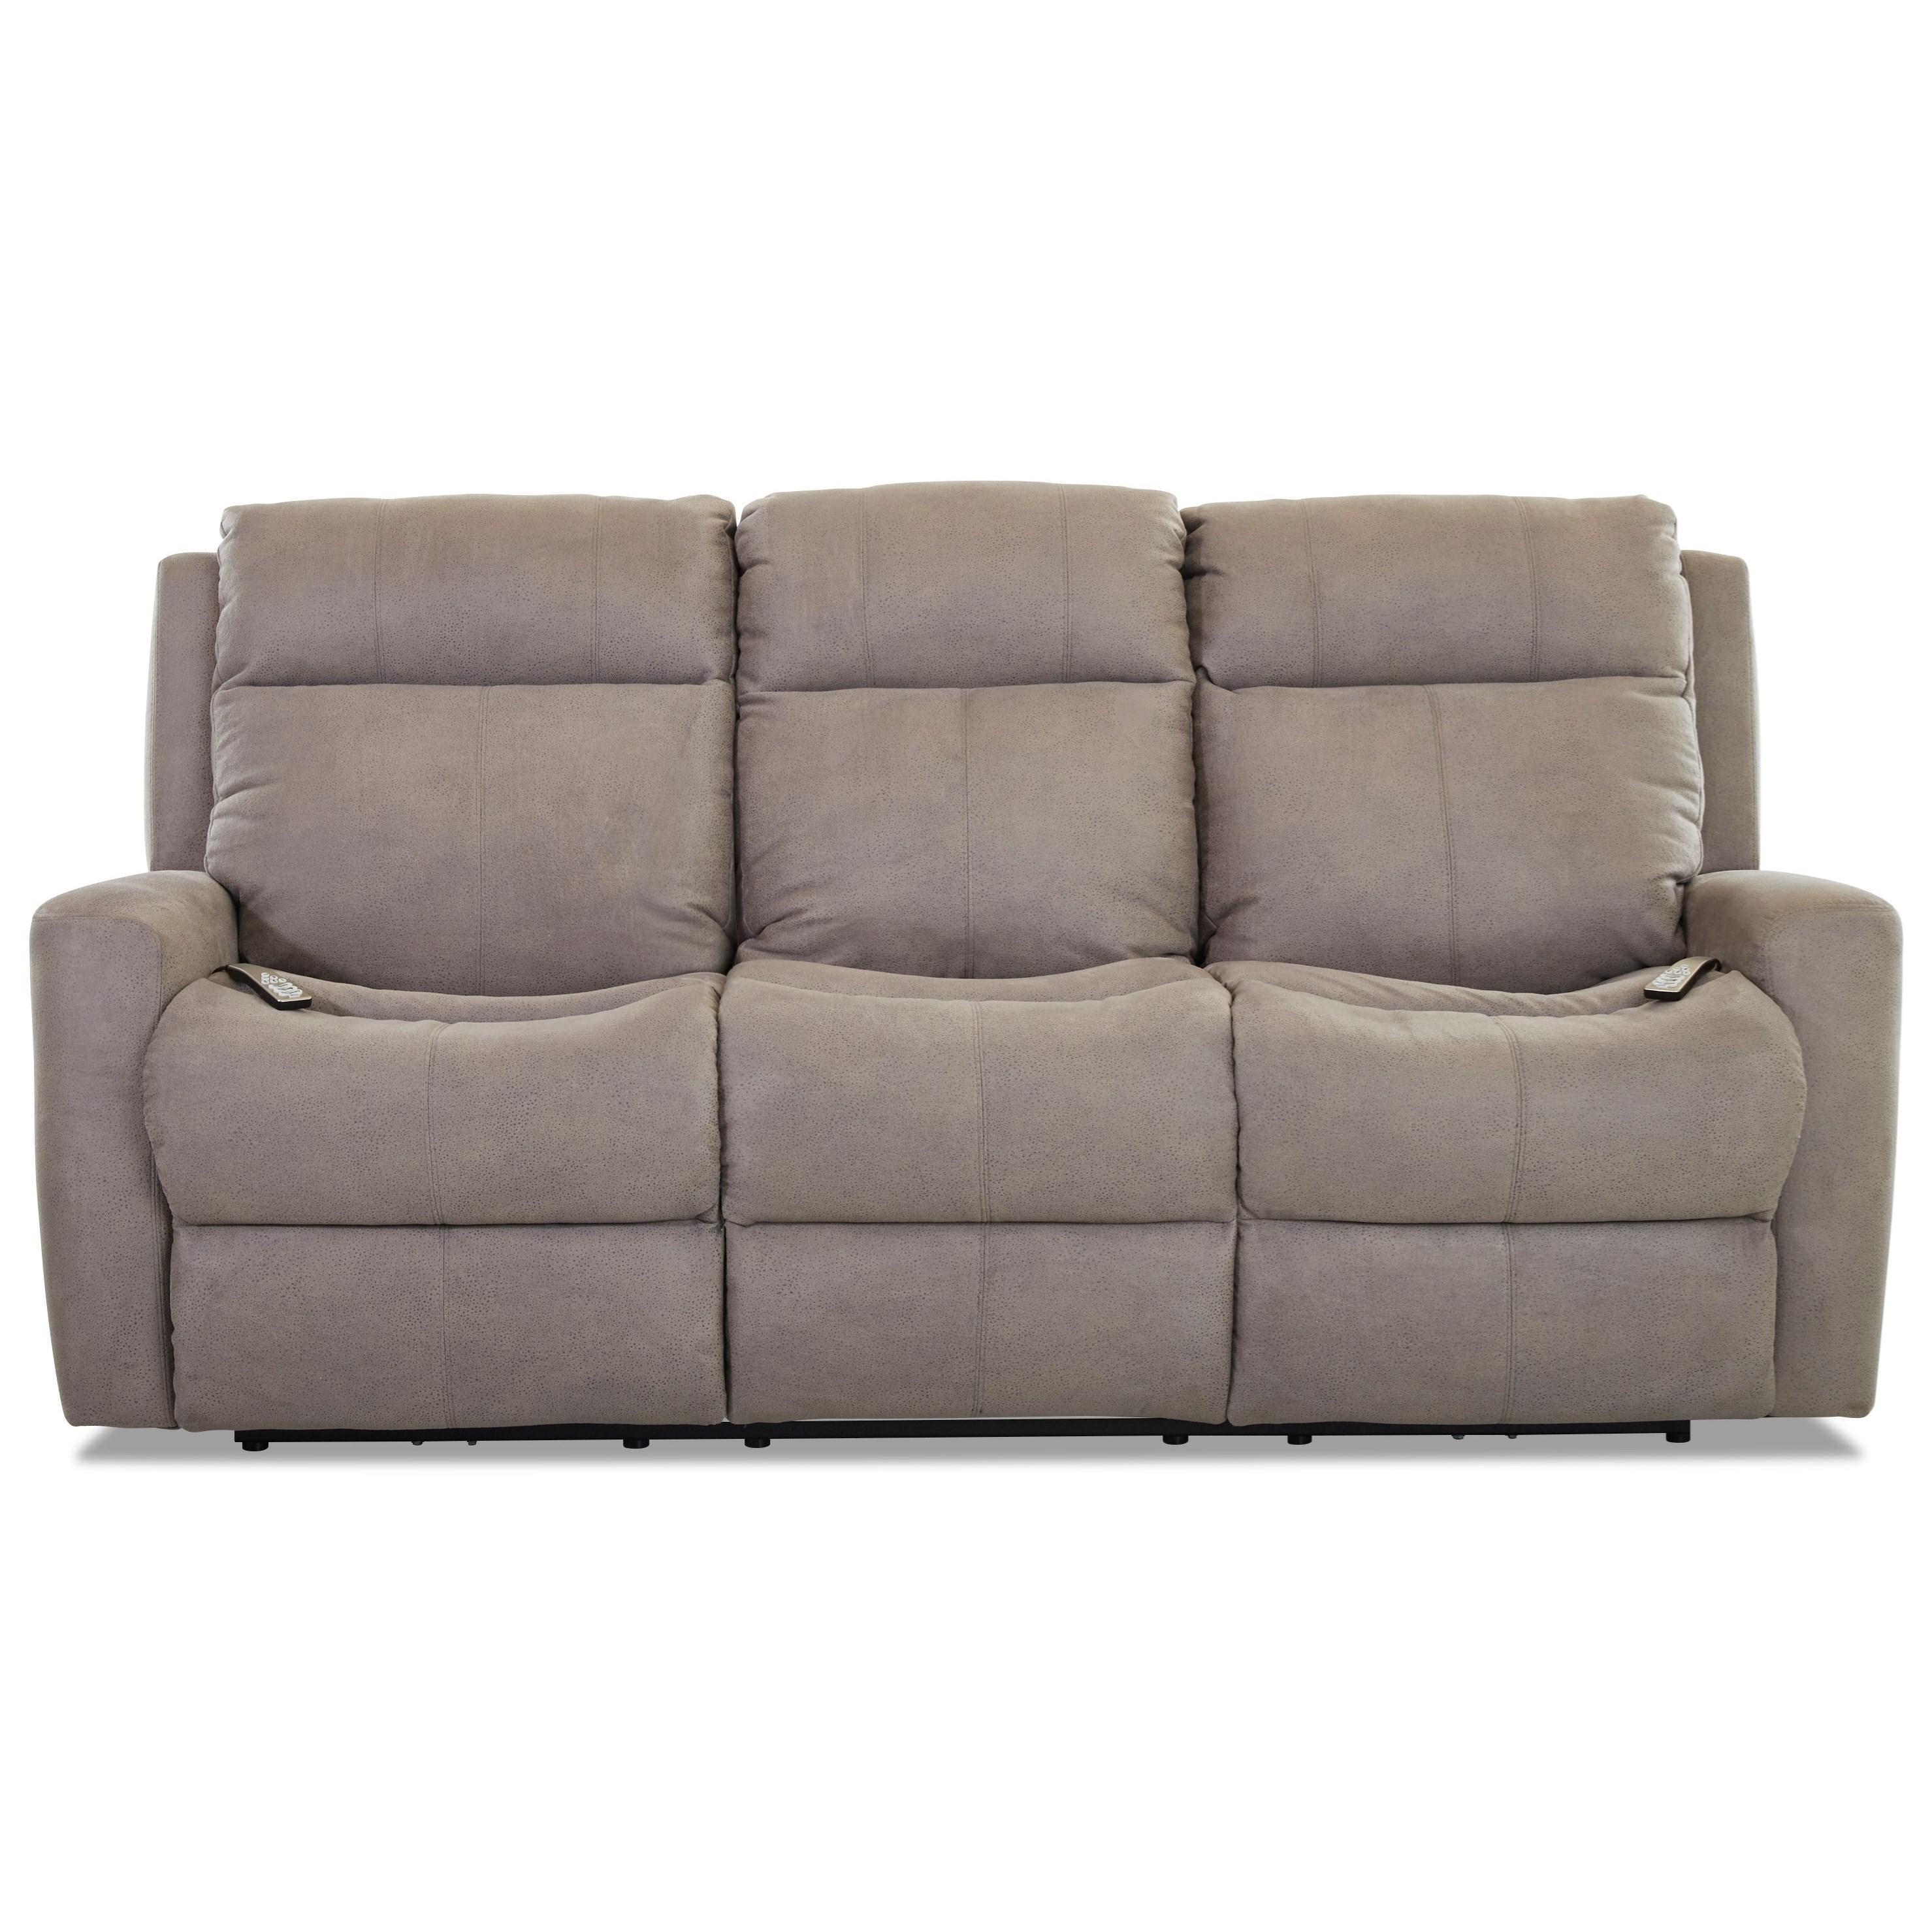 Brooks Power Recline Sofa w/ Pwr Head & Massage by Klaussner at Johnny Janosik